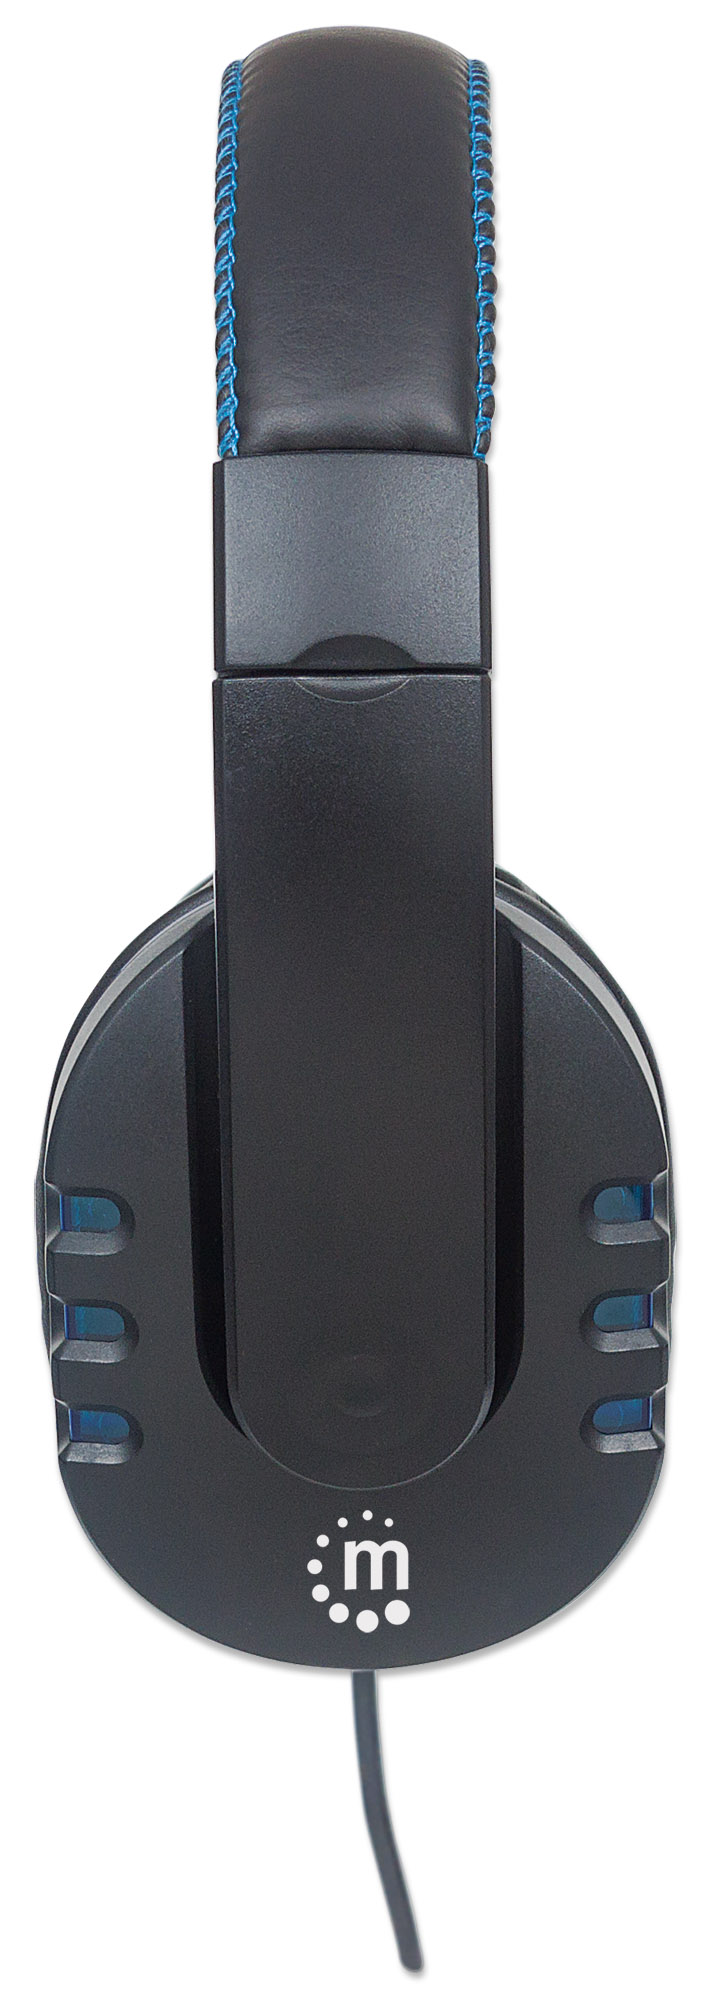 USB Gaming Headset with LEDs